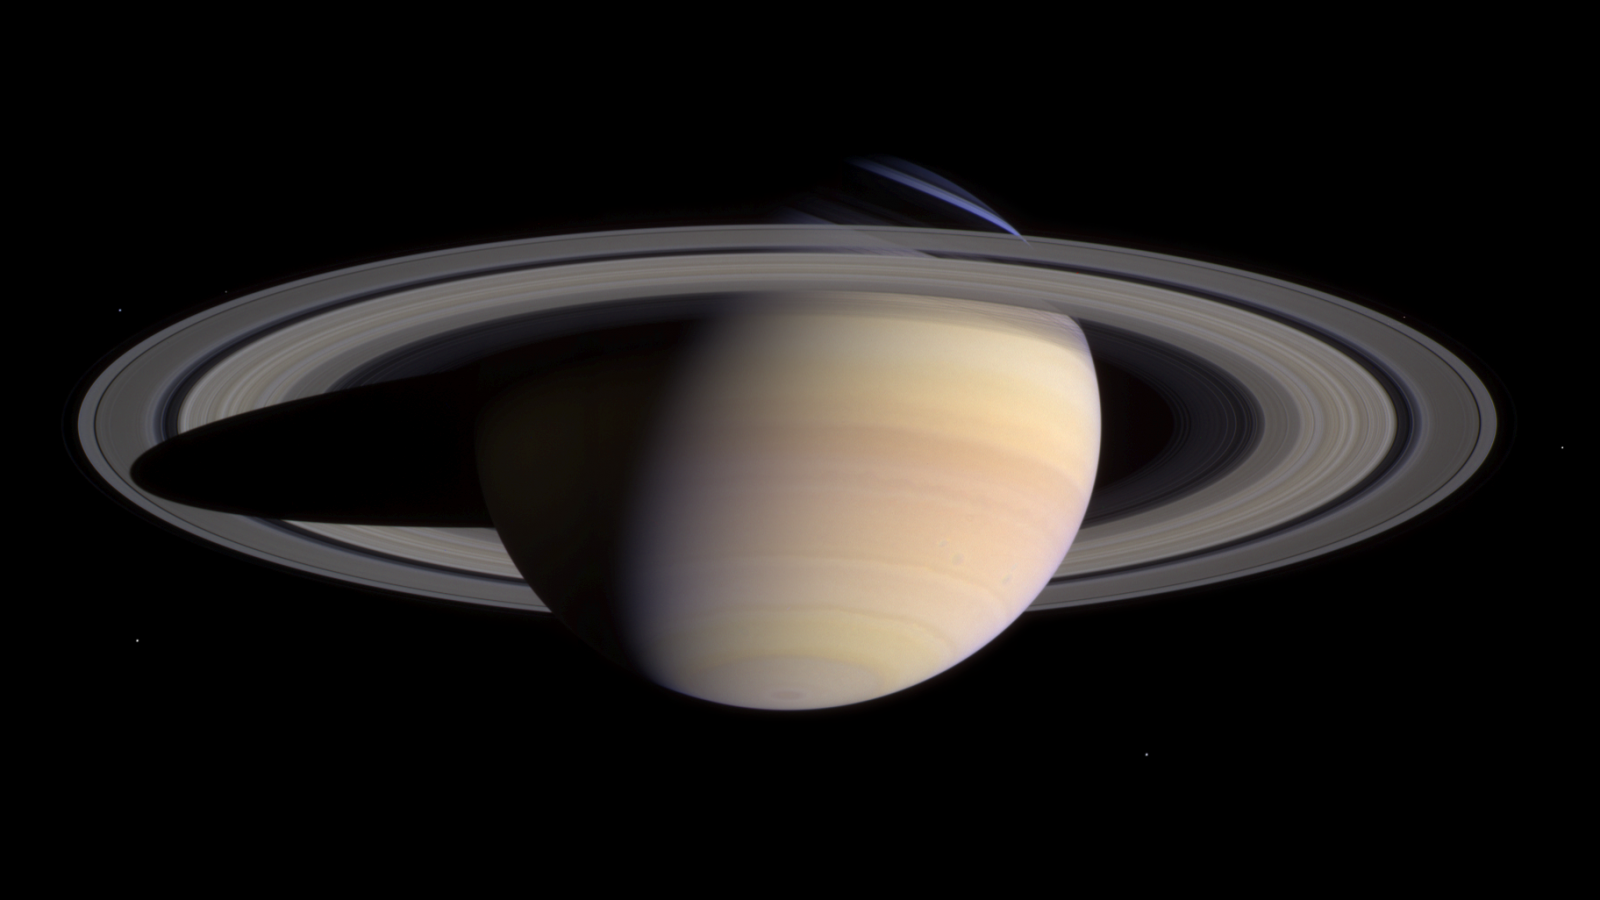 Saturn Ringworld Waiting